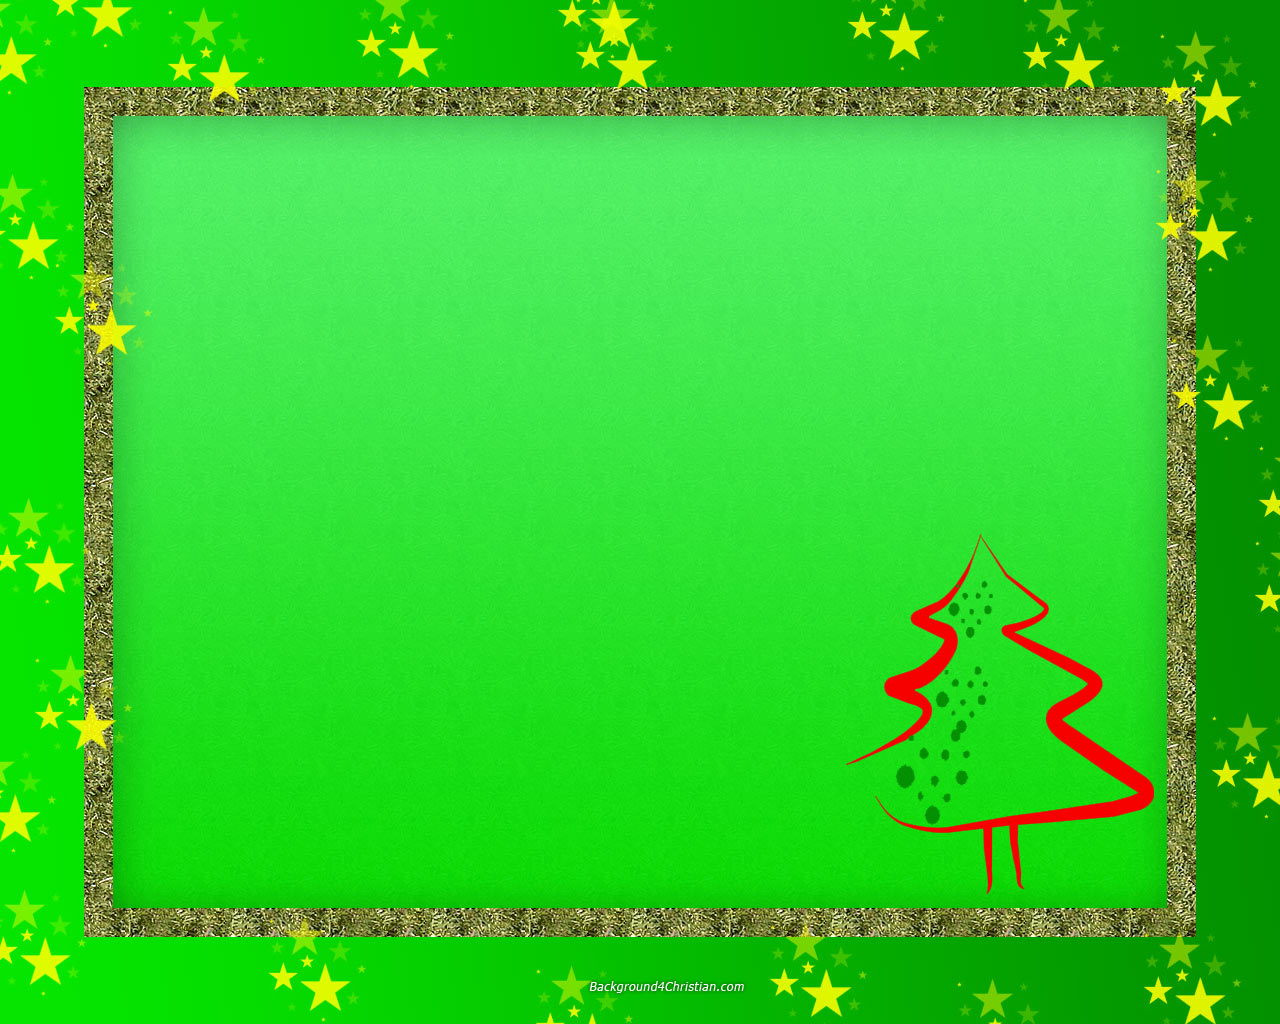 http://4.bp.blogspot.com/_btxOC4QA5fE/TRGz1Lihg-I/AAAAAAAAACA/aVEyh3Lm9gU/s1600/christmas-day-background.jpg